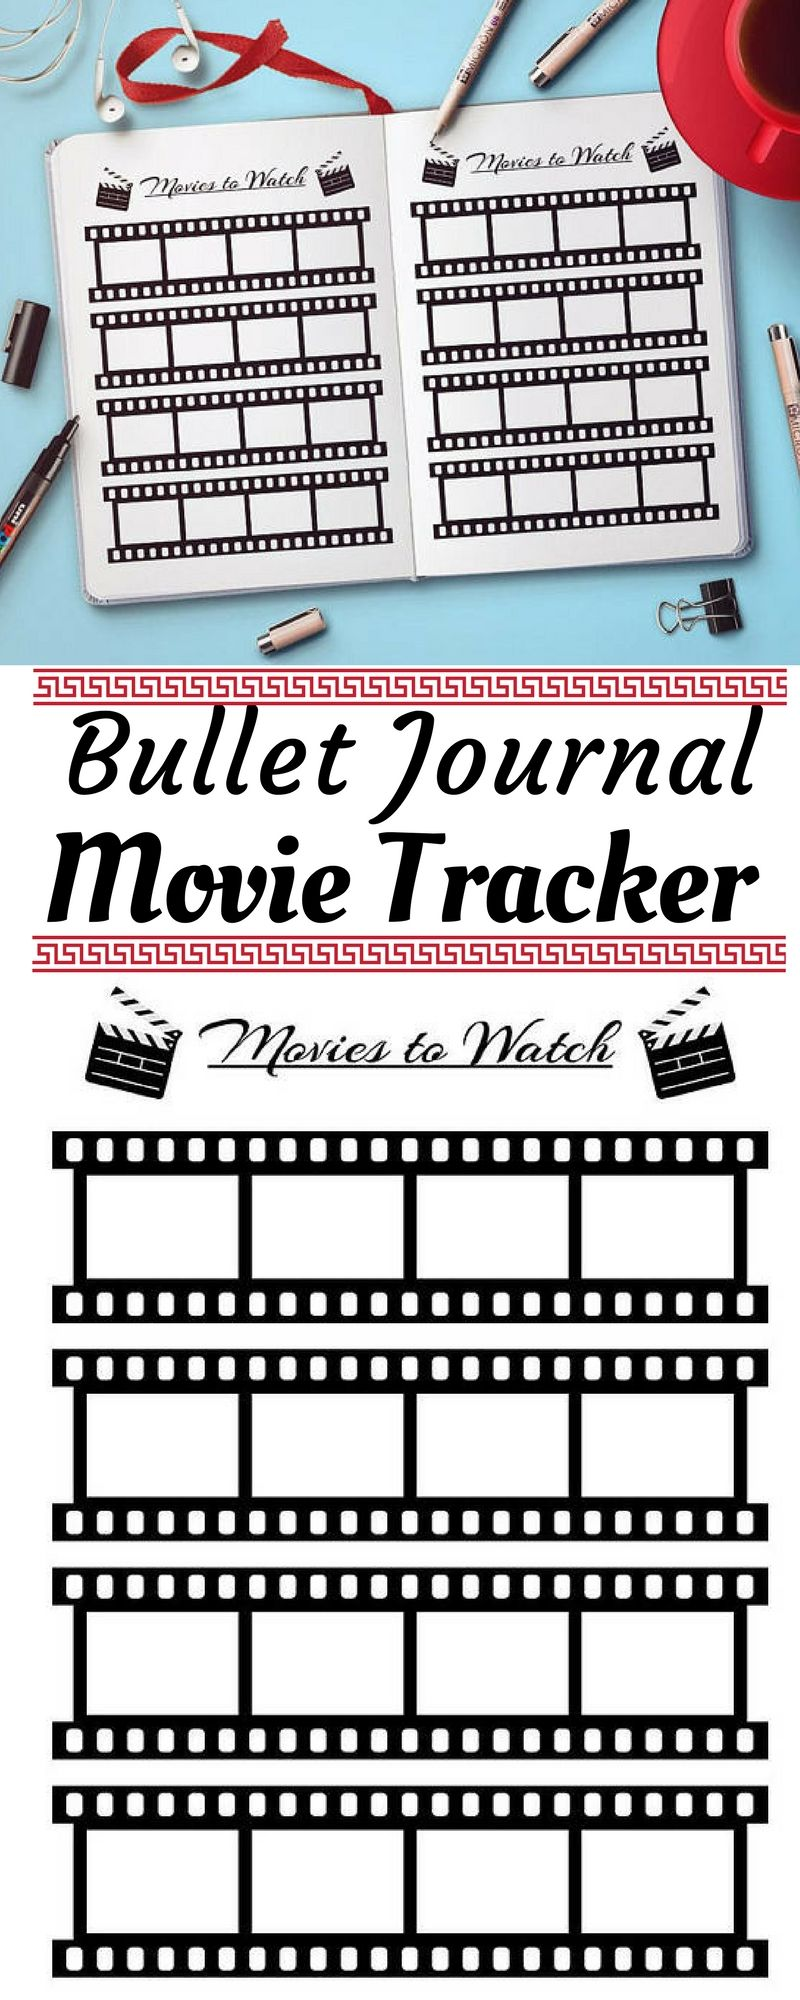 Bullet Journal Movies To Watch Planner Printable Movie Tracker